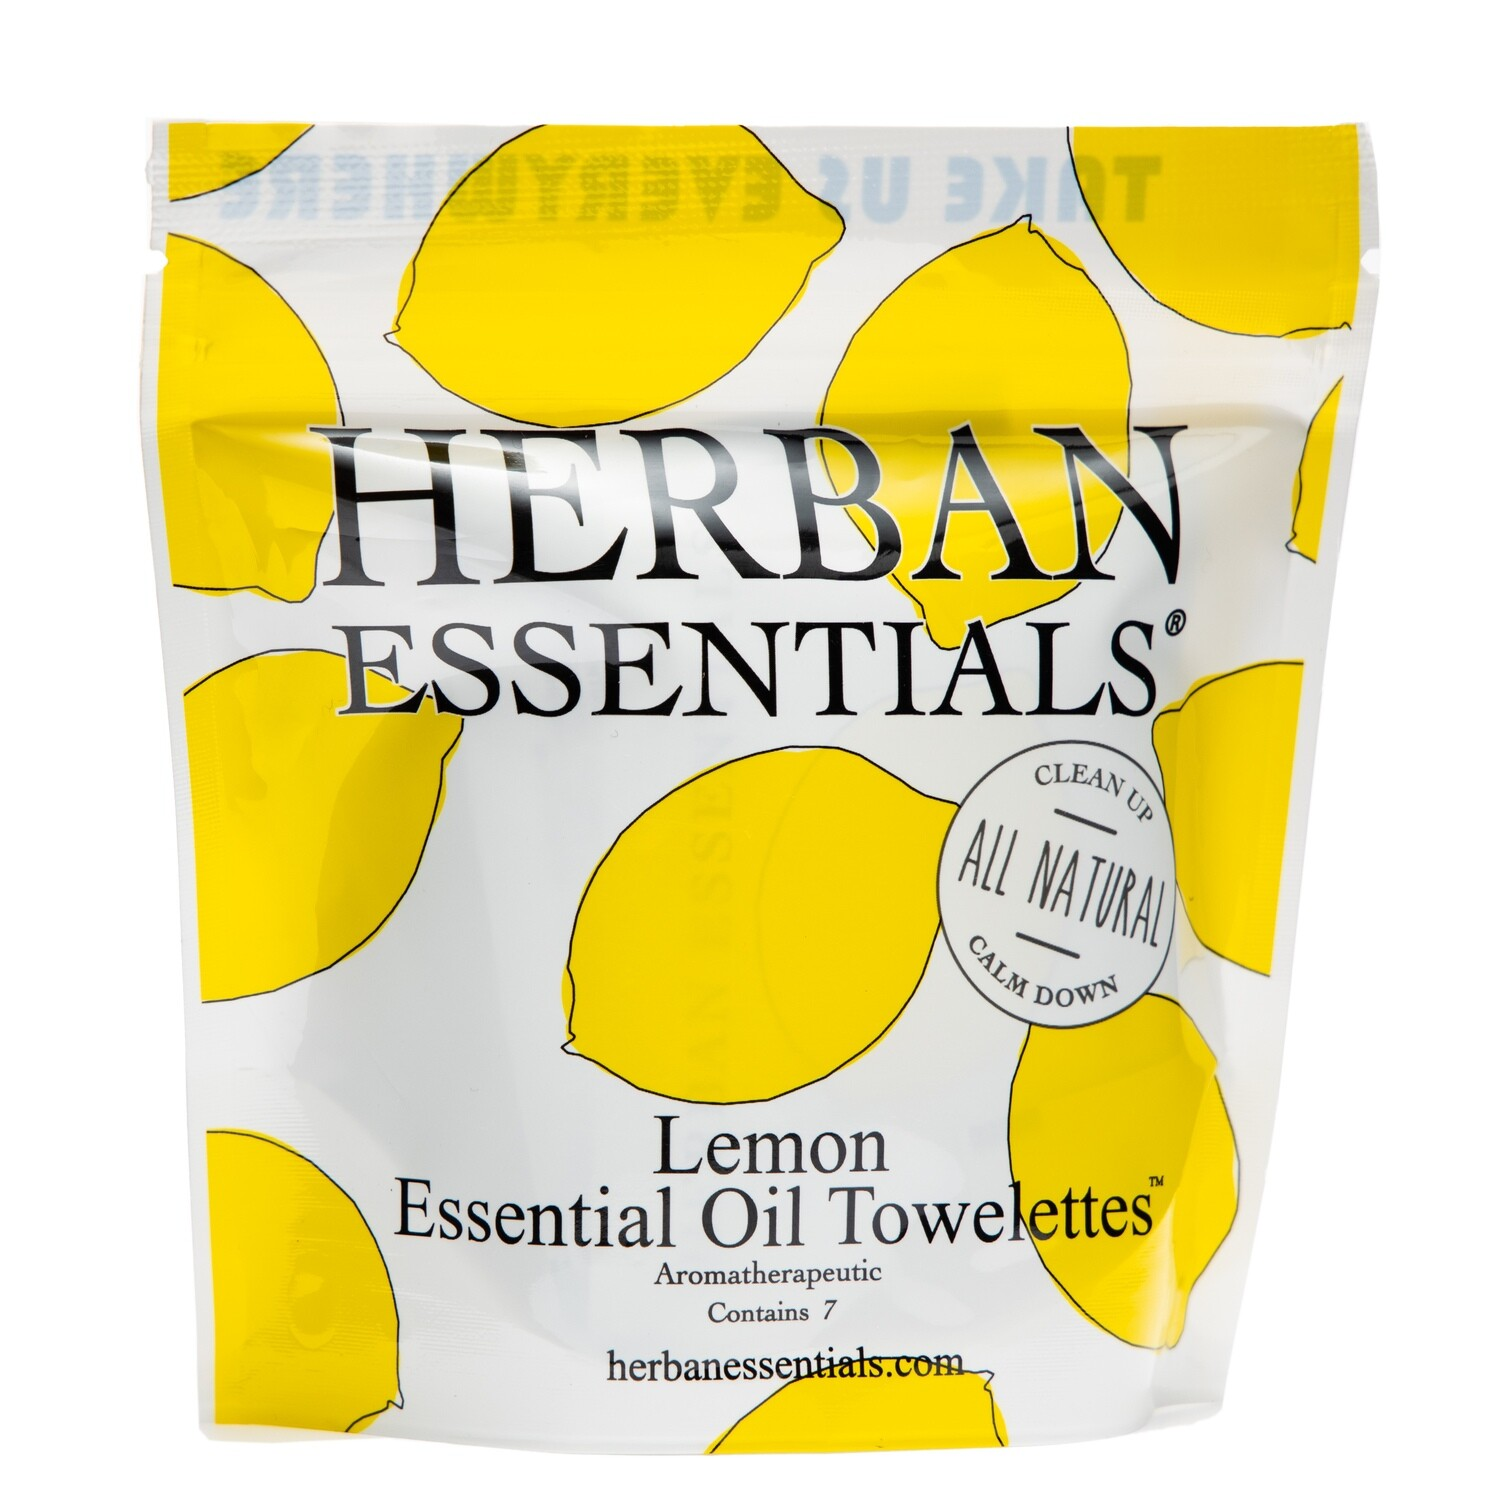 Lemon -Clean your hands. Wipe devices like phones, computers, keyboards, etc. Inhale for refreshment and energy.